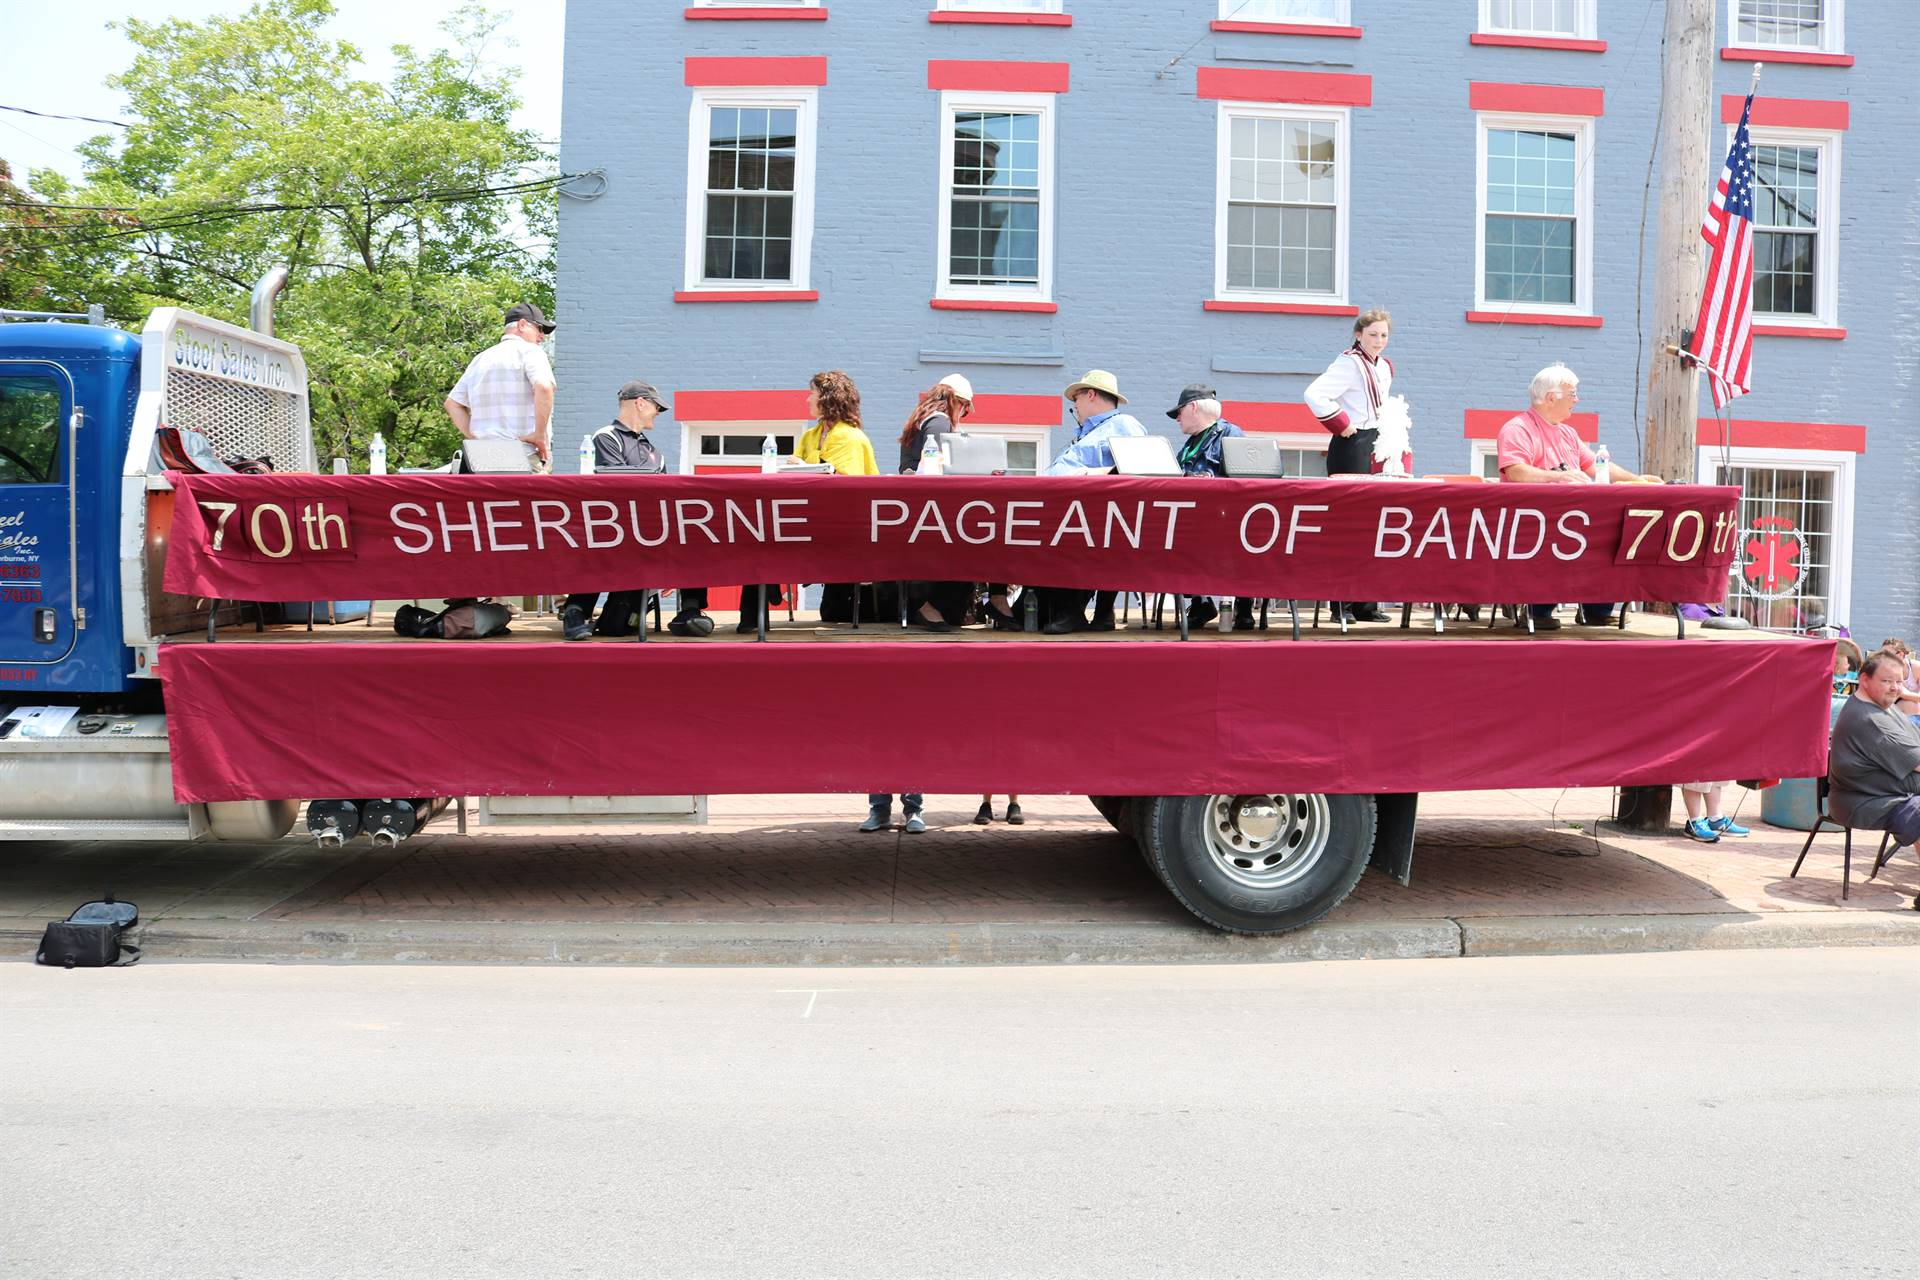 70th annual Sherburne Pageant of Bands 2019